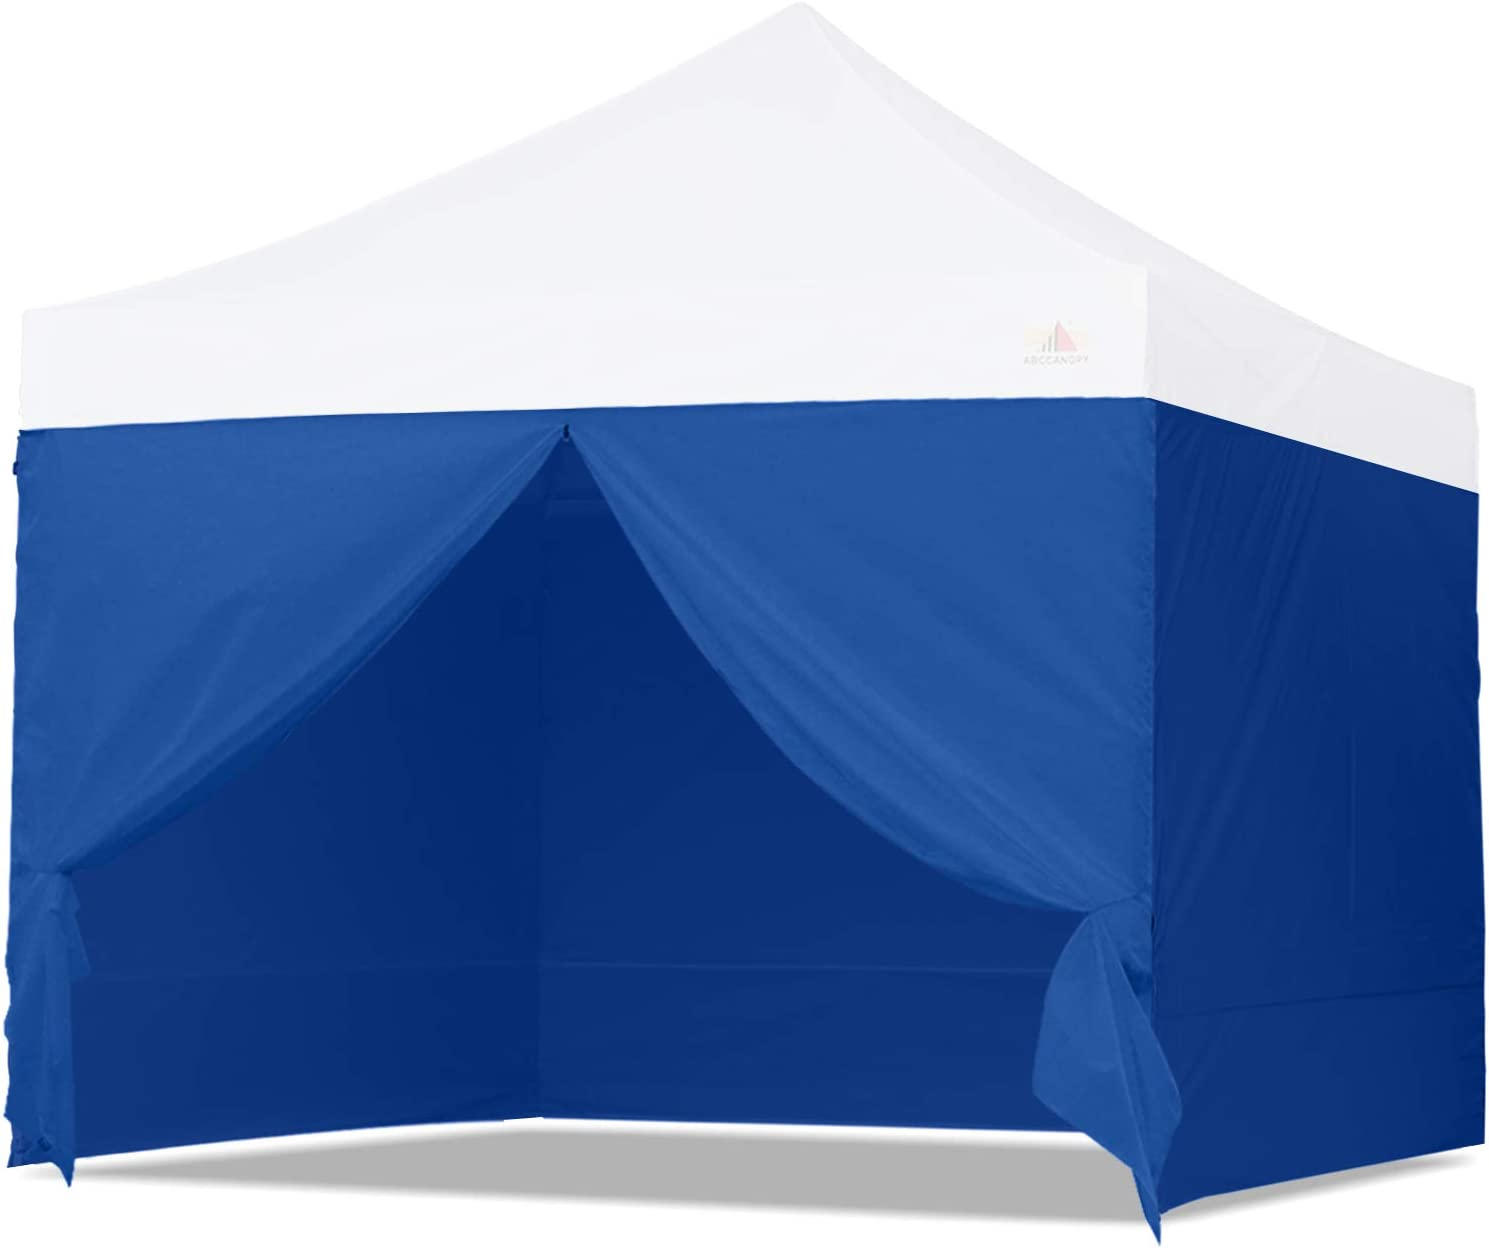 ABCCANOPY Sidewall Kit, Paint Booth Side Walls for 8x8 Feet Pop up Canopy, Beach Tent, Instant Shelter, 4 Walls ONLY, Blue